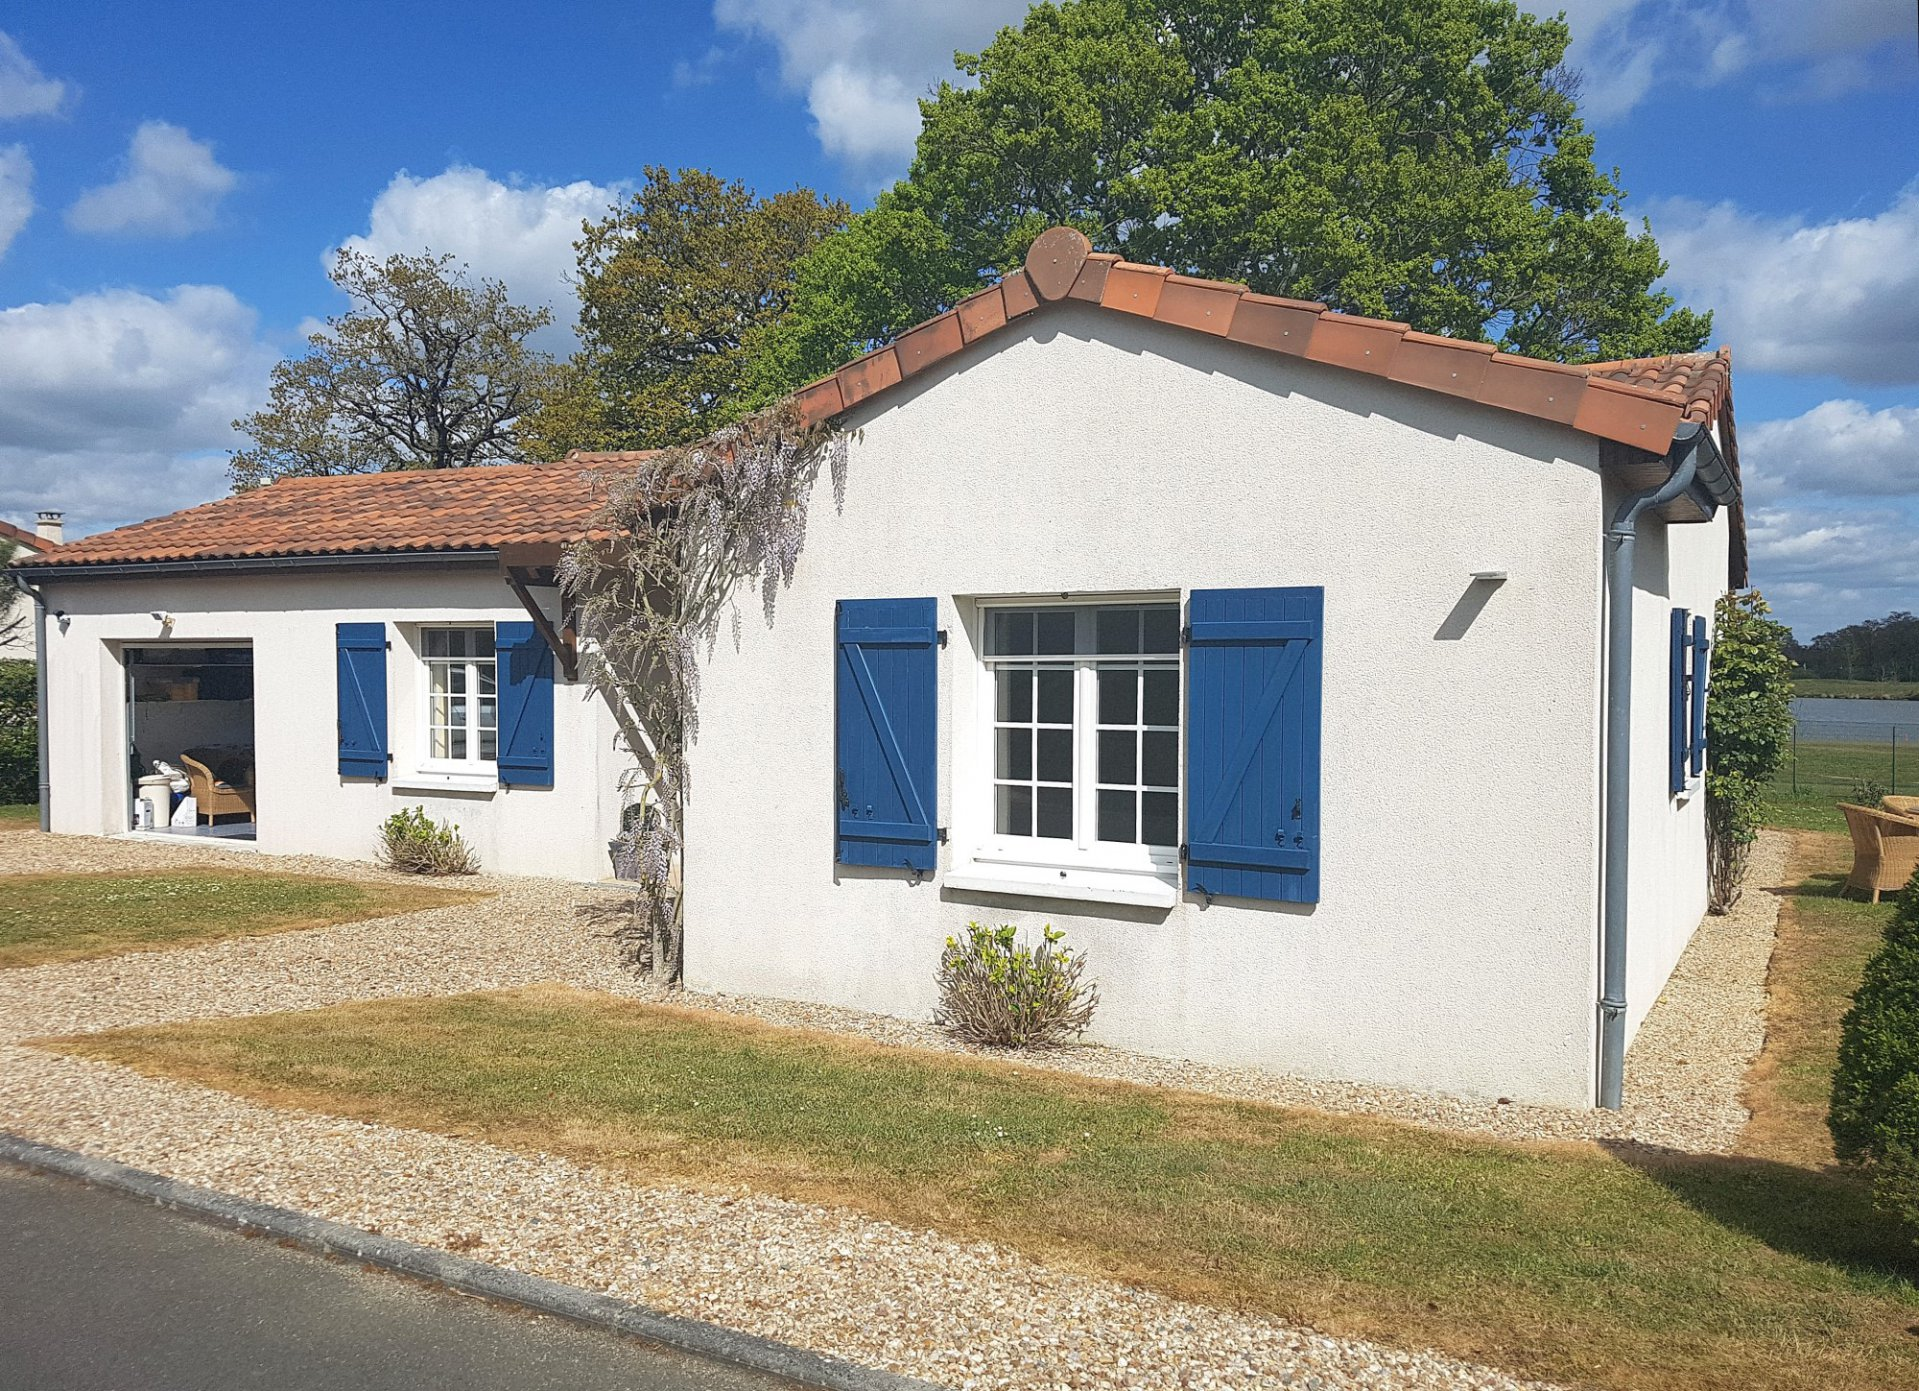 Deux-Sevres 79, golf Les Forges: house with garage and view